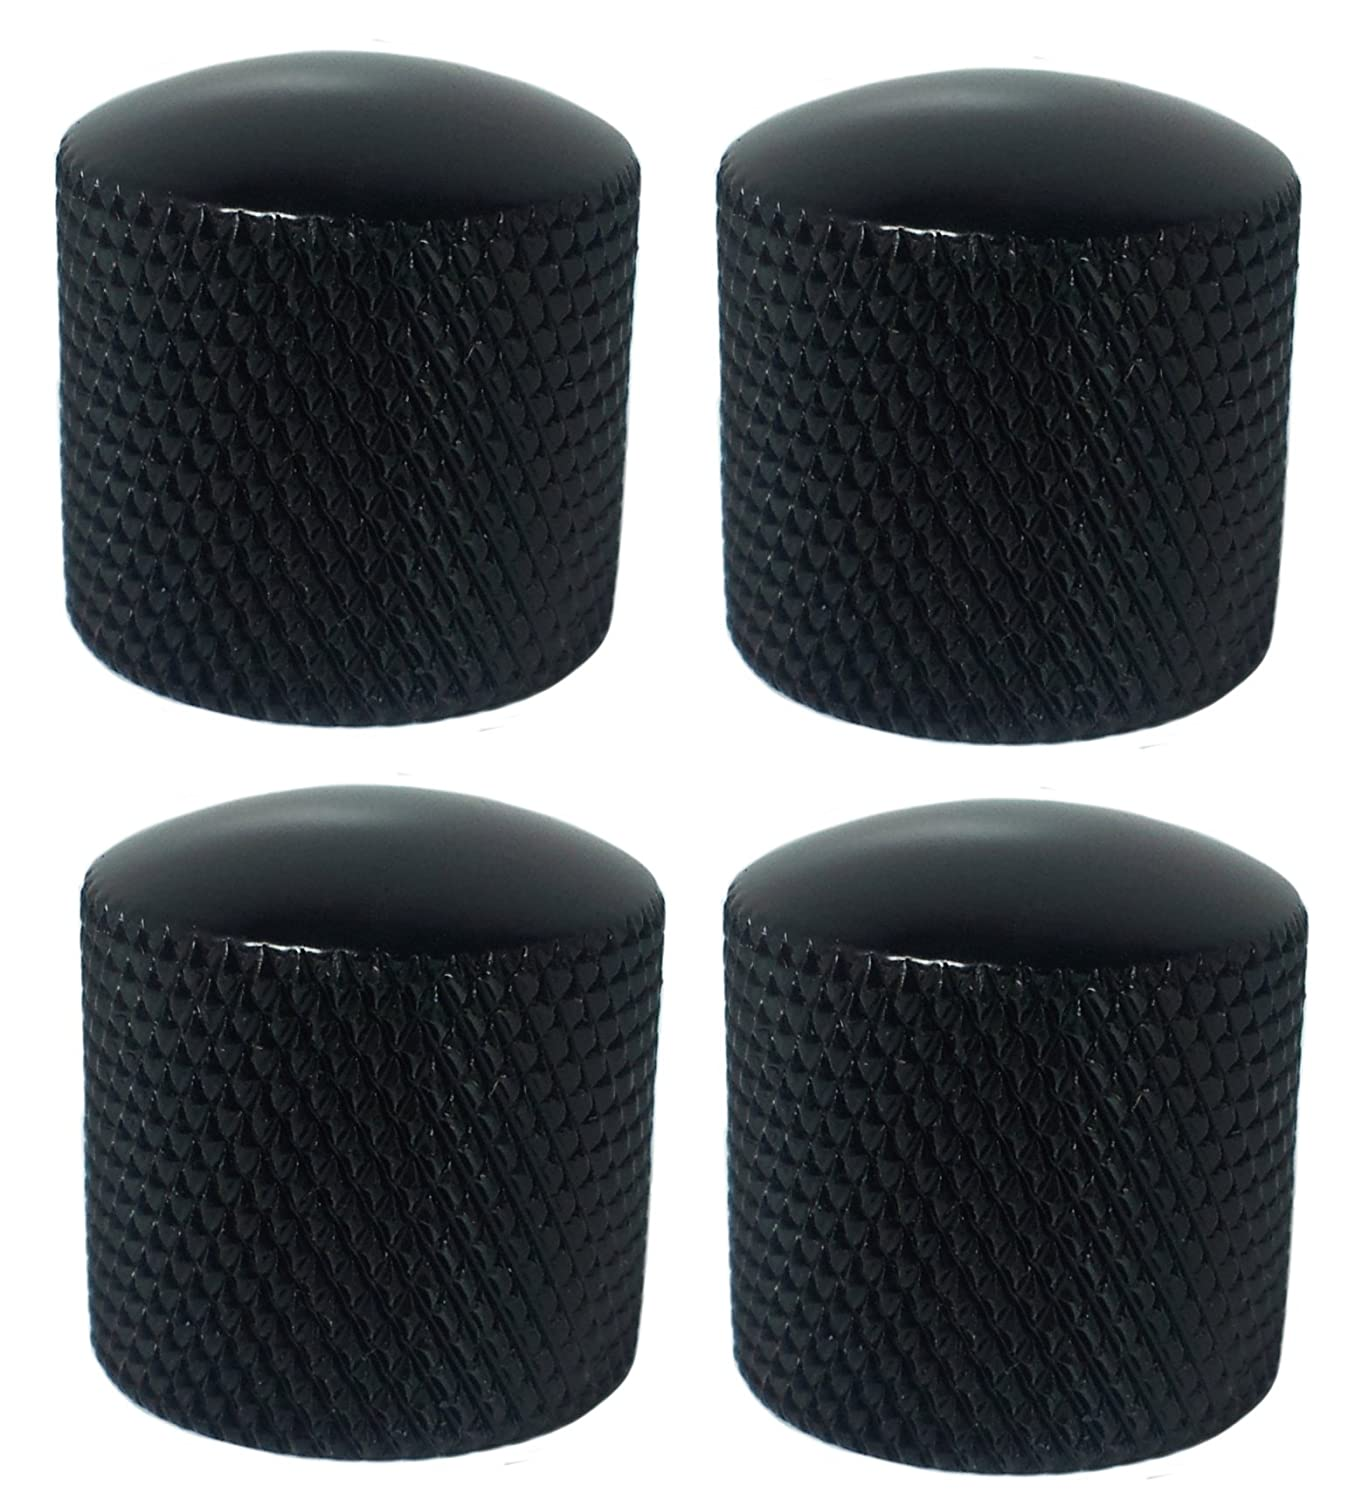 Polished Metal For Bass or Guitar Set of 4 Black Dome Knobs